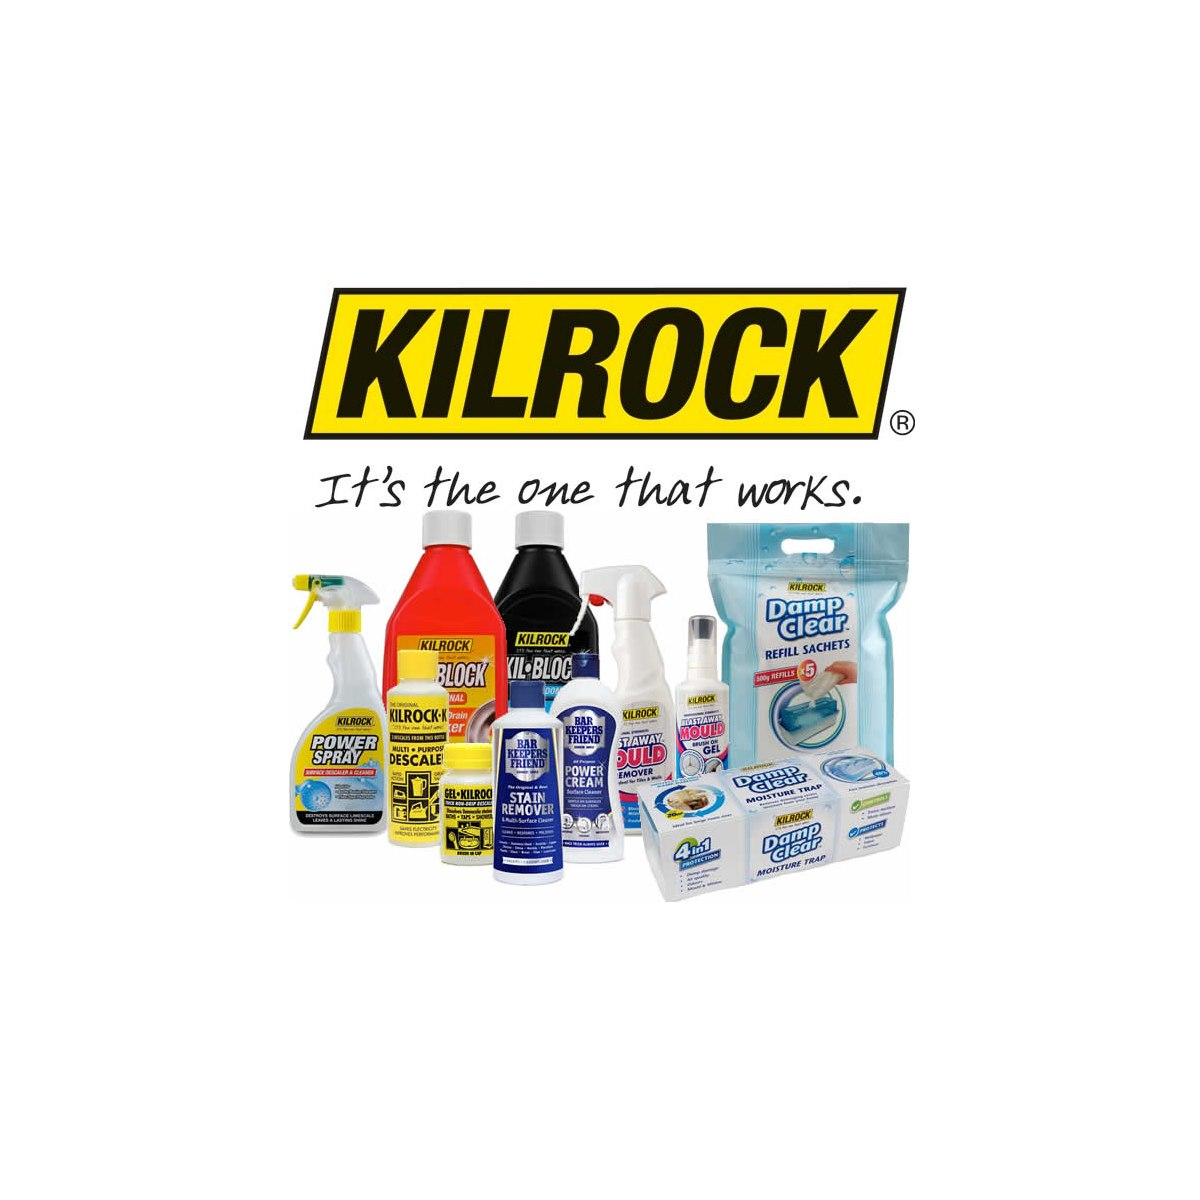 Kilrock Products